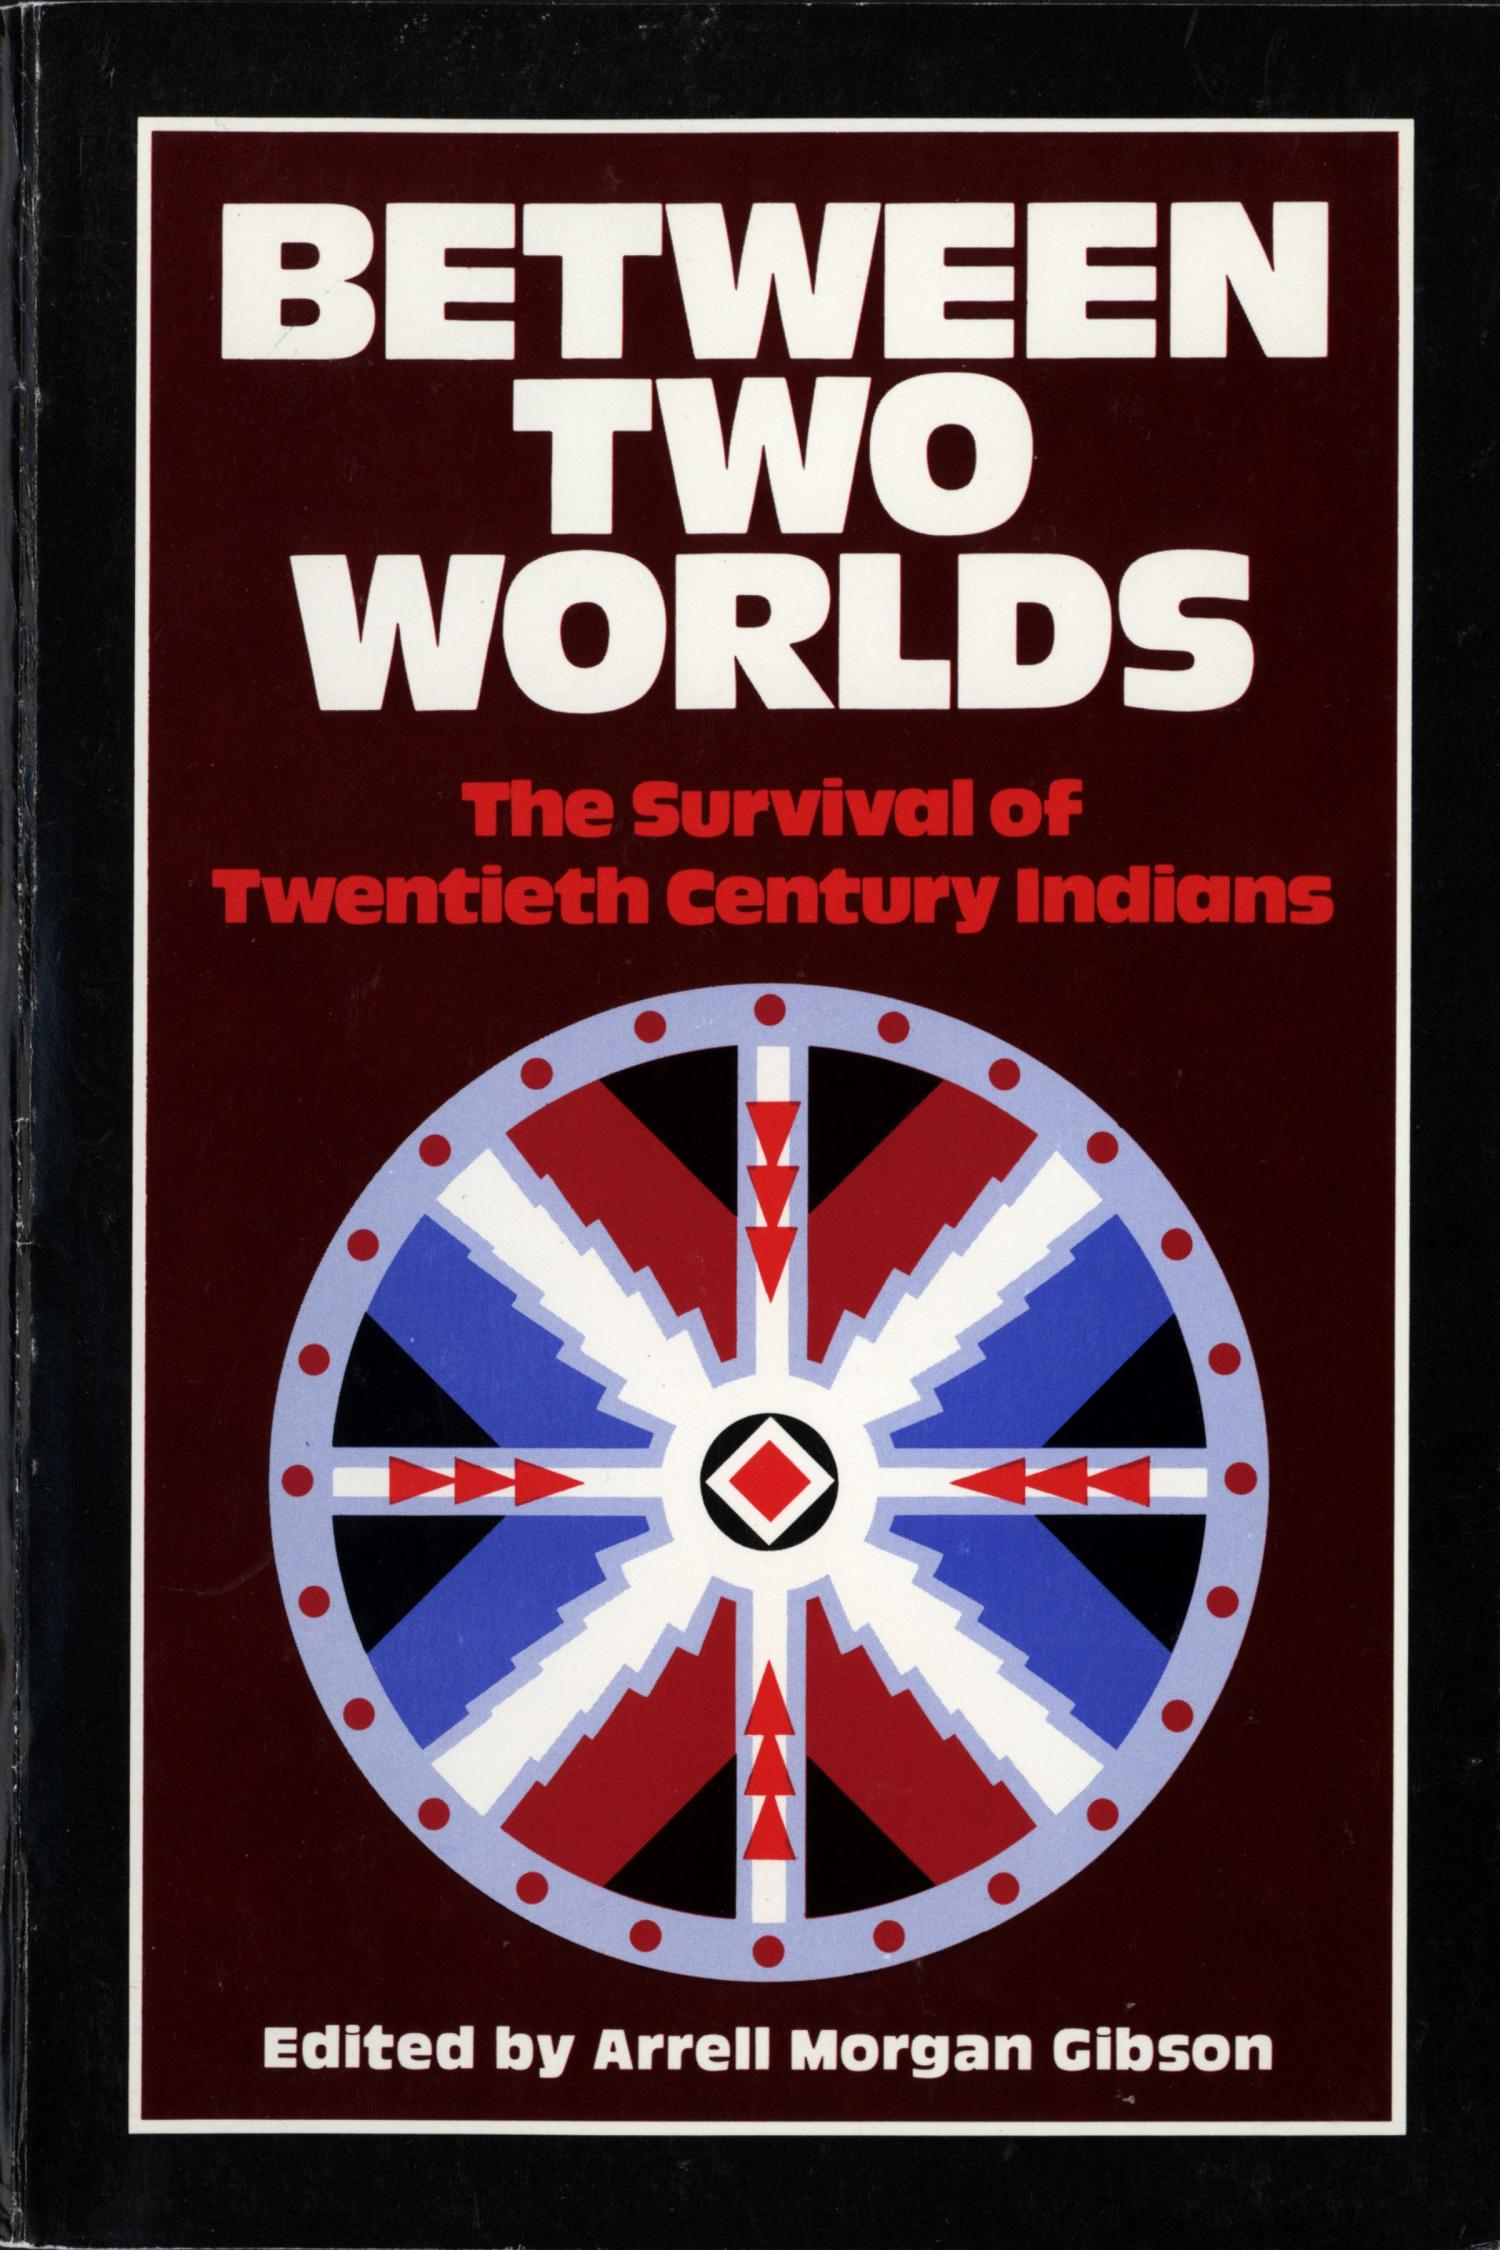 Between Two Worlds: The Survival of Twentieth Century Indians                                                                                                      Front Cover